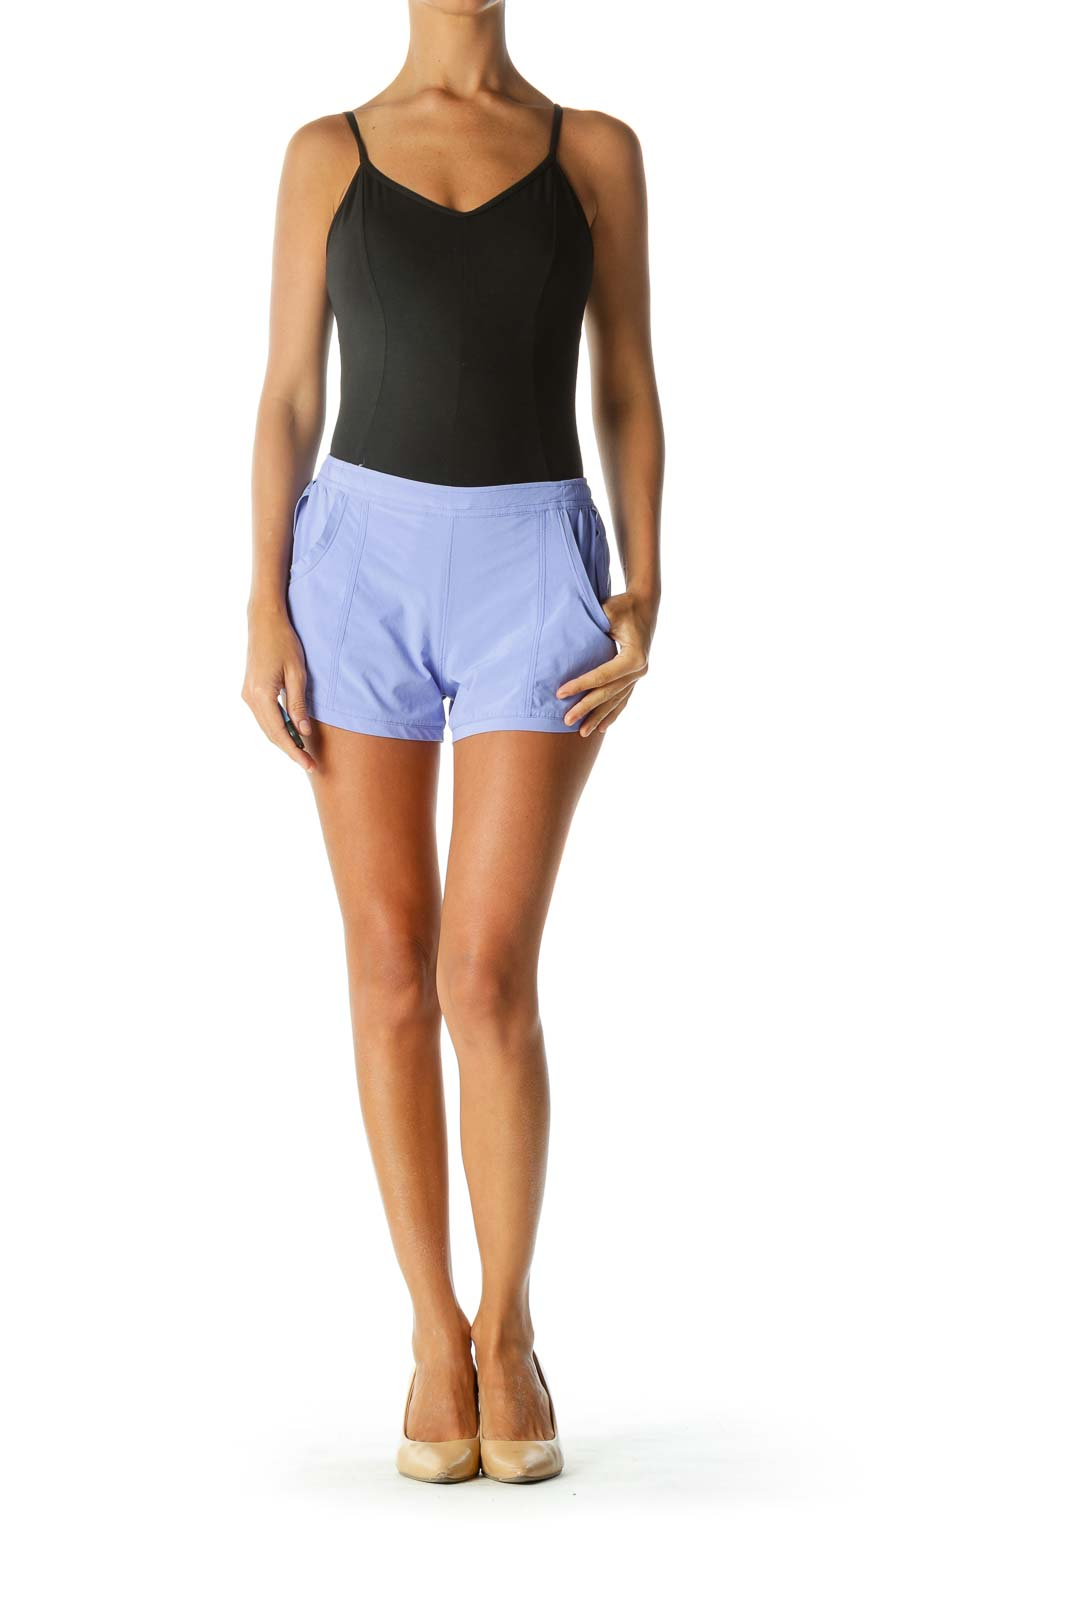 Periwinkle Pocketed Running Shorts